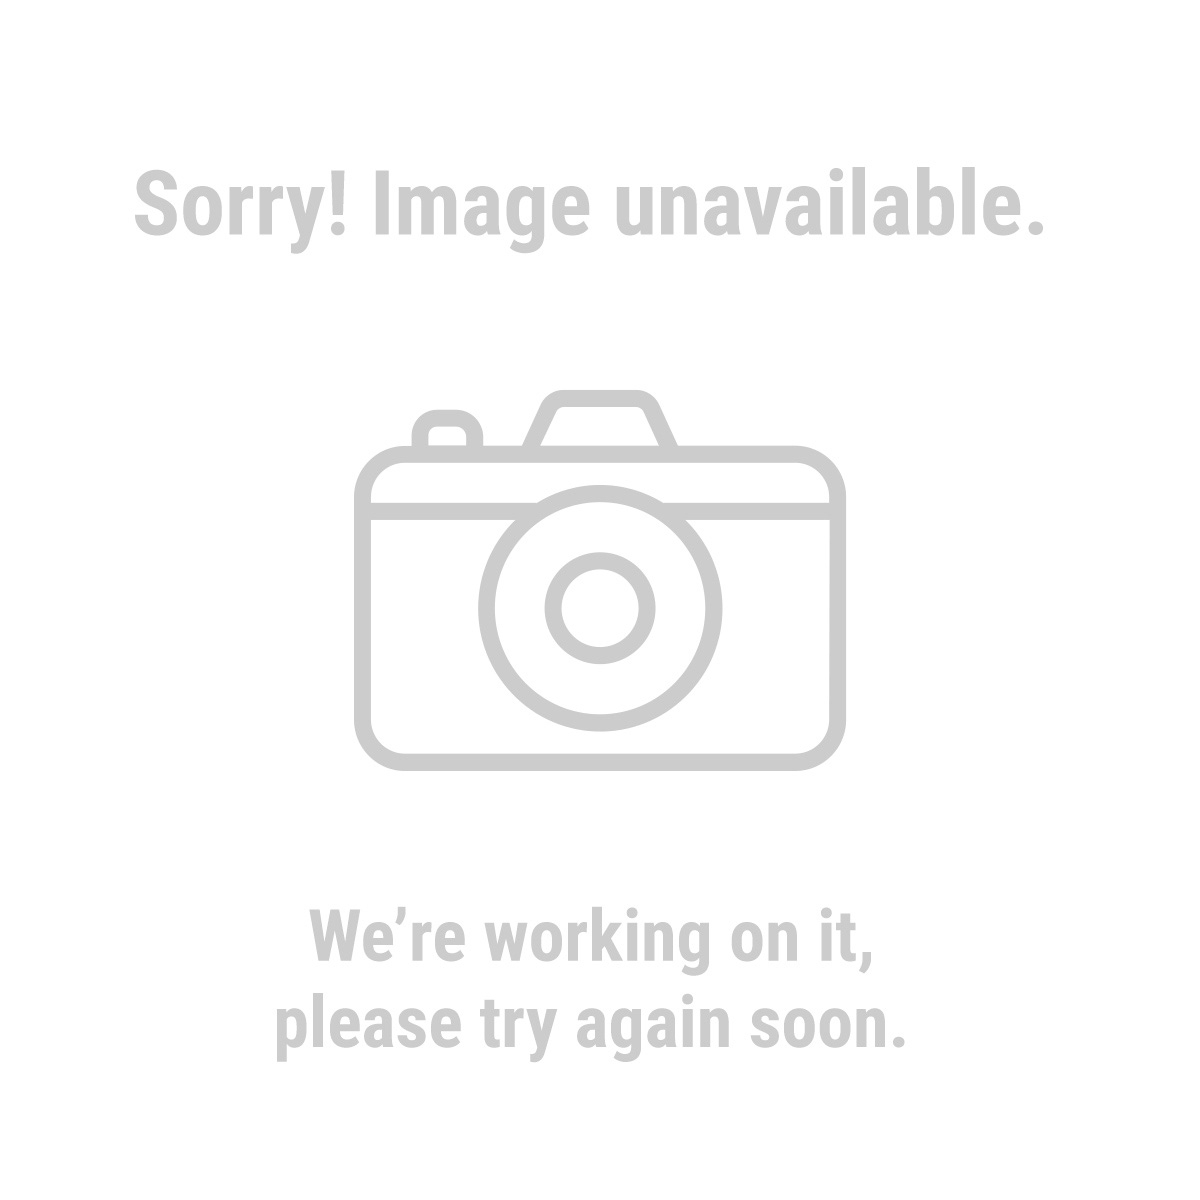 "Chicago Electric Welding 69531 0.035"" ER70S-6 Carbon Steel Welding Wire, 10 Lb. Roll"